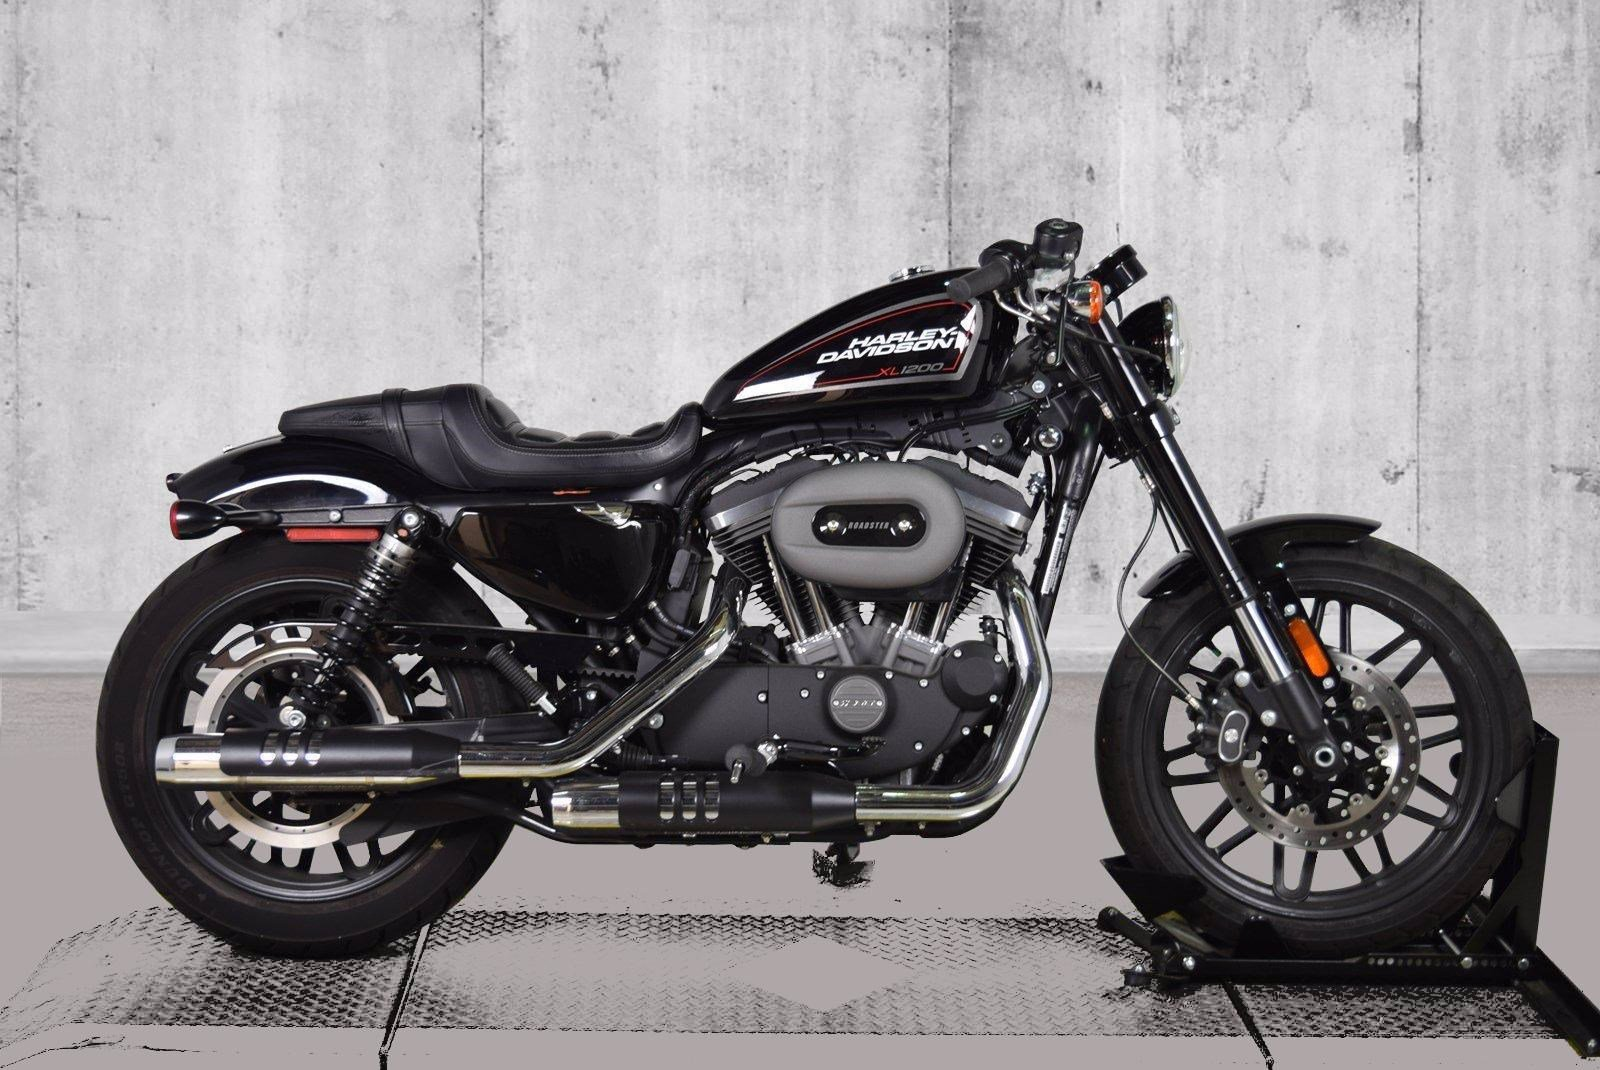 Pre-Owned 2019 Harley-Davidson Sportster Roadster XL1200CX